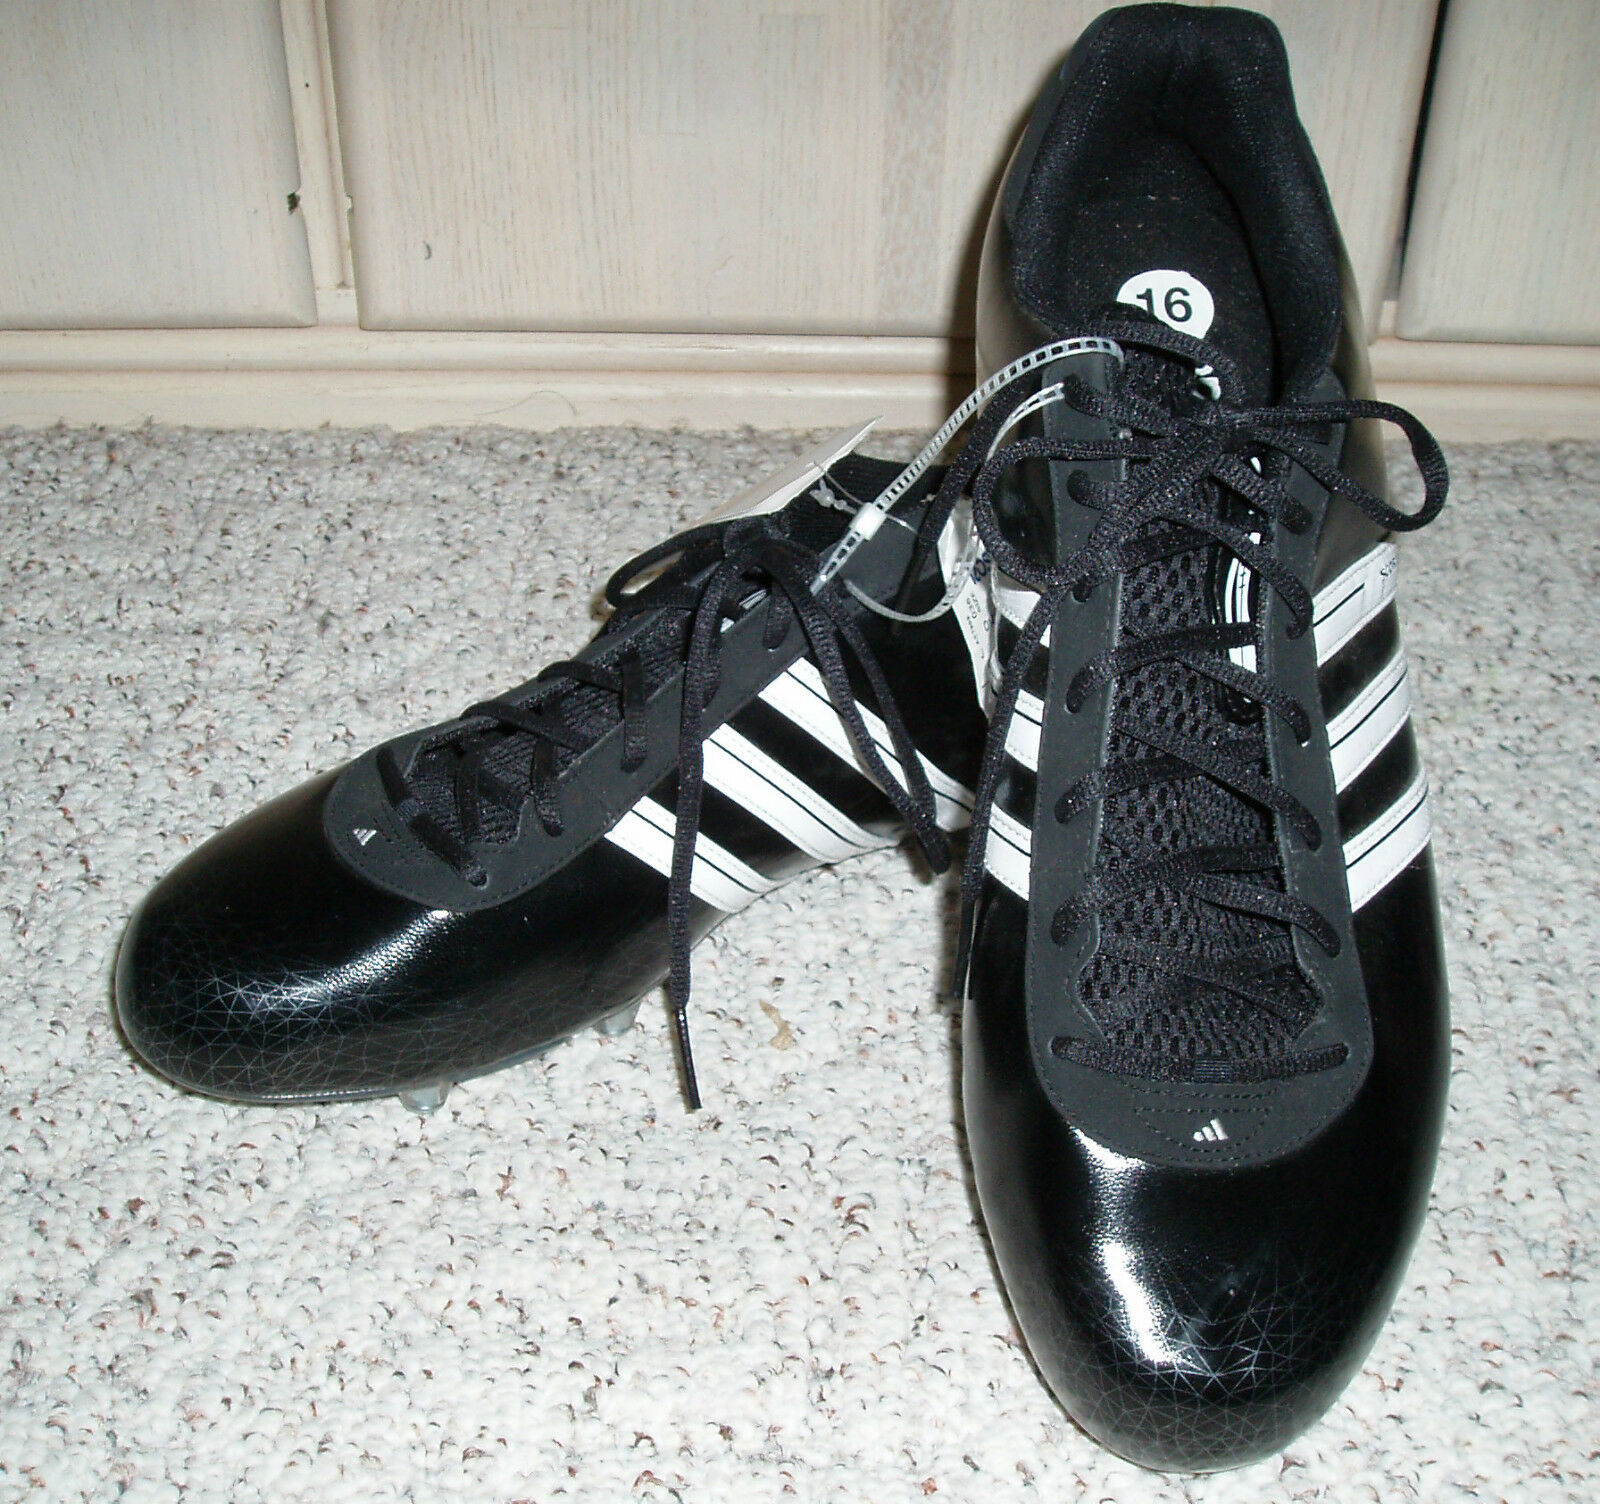 NWT~Men's ADIDAS Scorch Low Football Cleats Shoes Spiderweb~Black~Comfortable Cheap women's shoes women's shoes